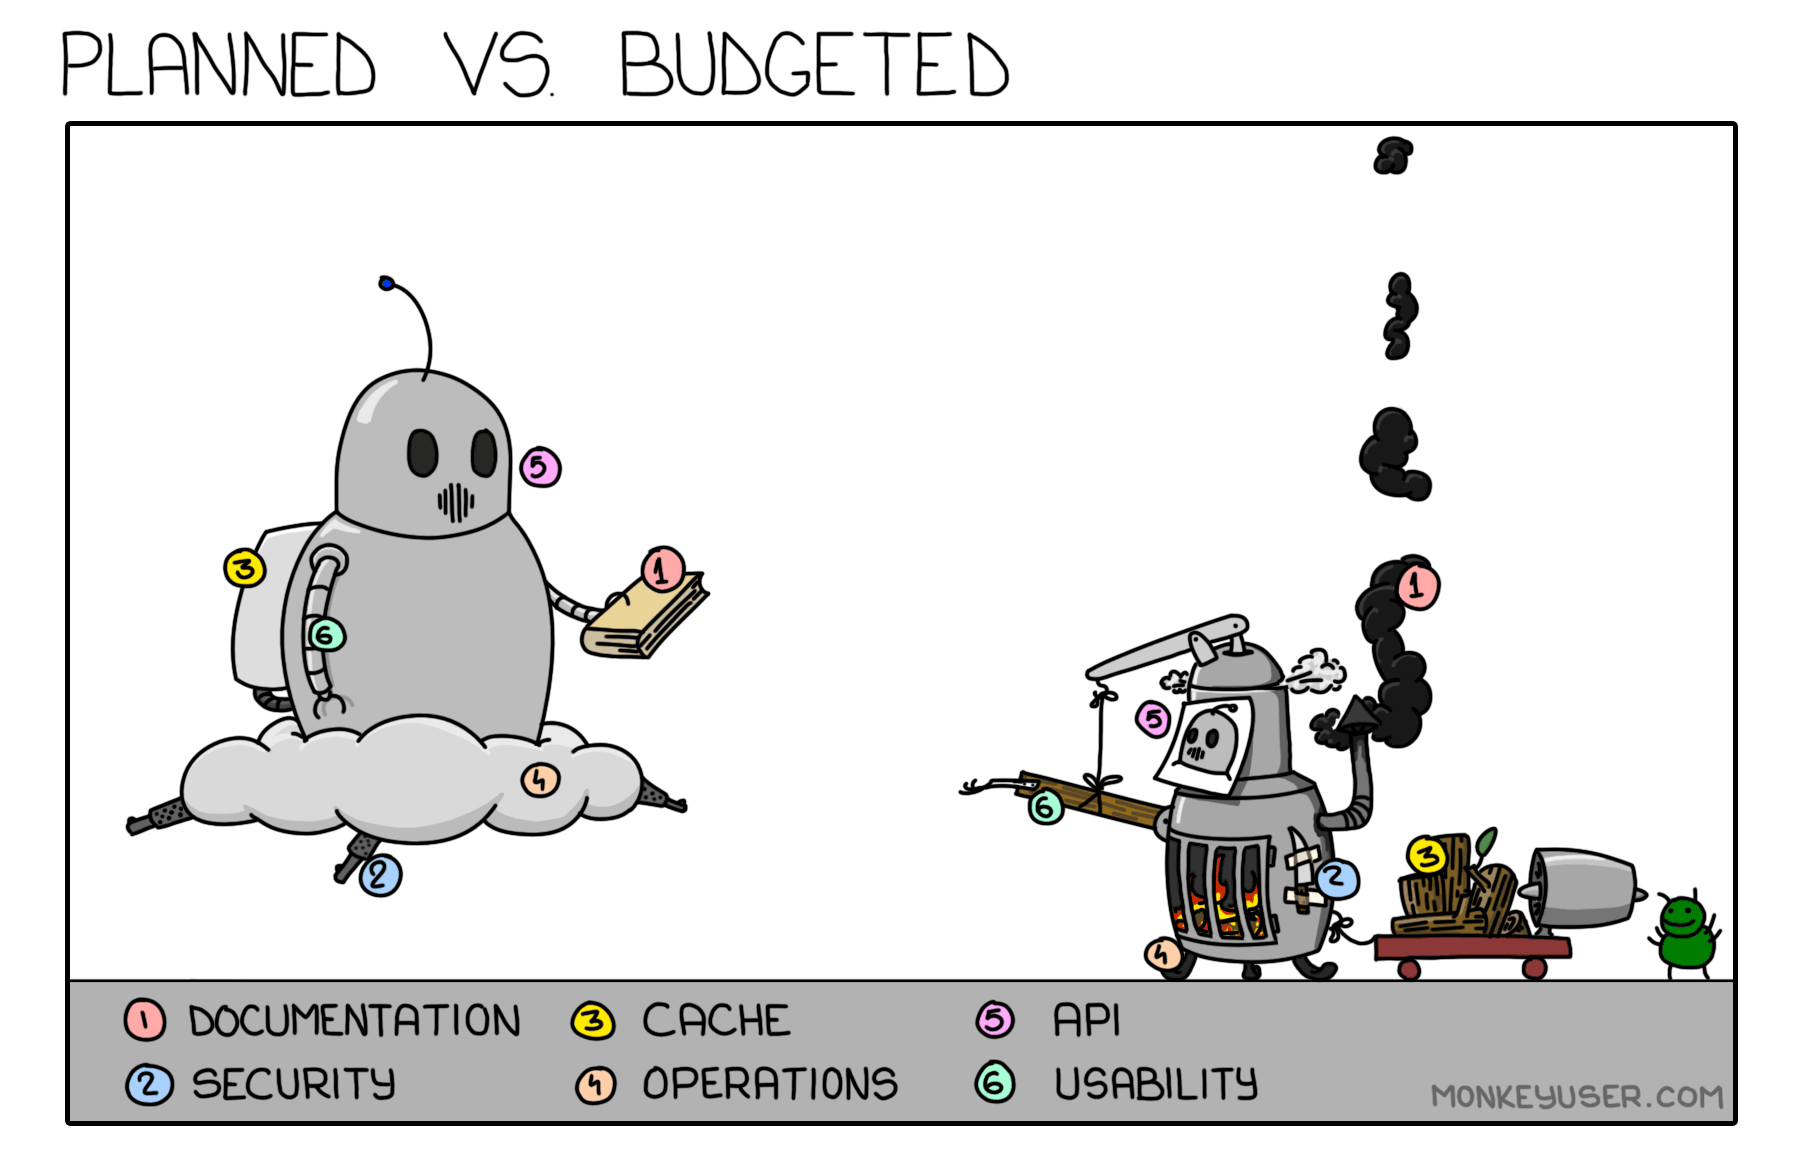 Planned vs Budgeted